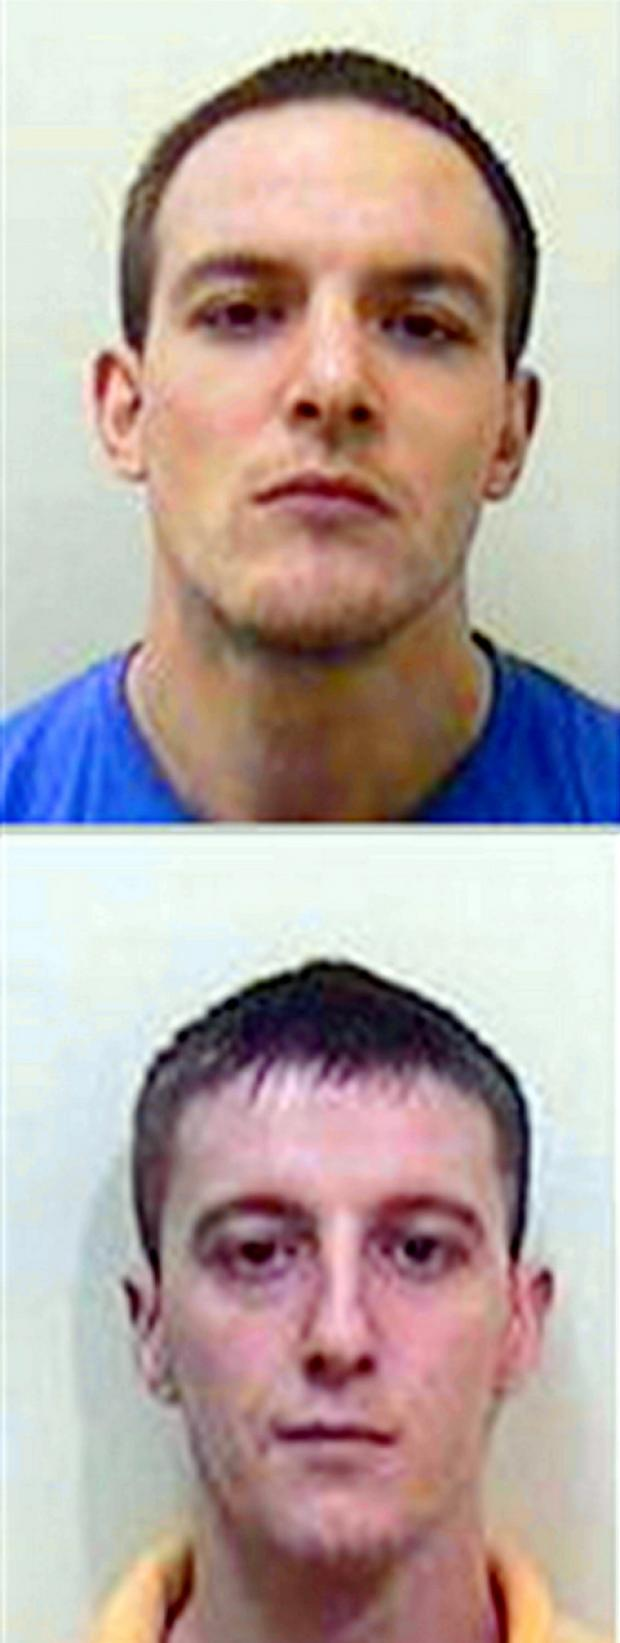 Stephen Rees, 31, and Liam Ahearne, 24, absconded from HMP Leyhill on Wednesday, January 30